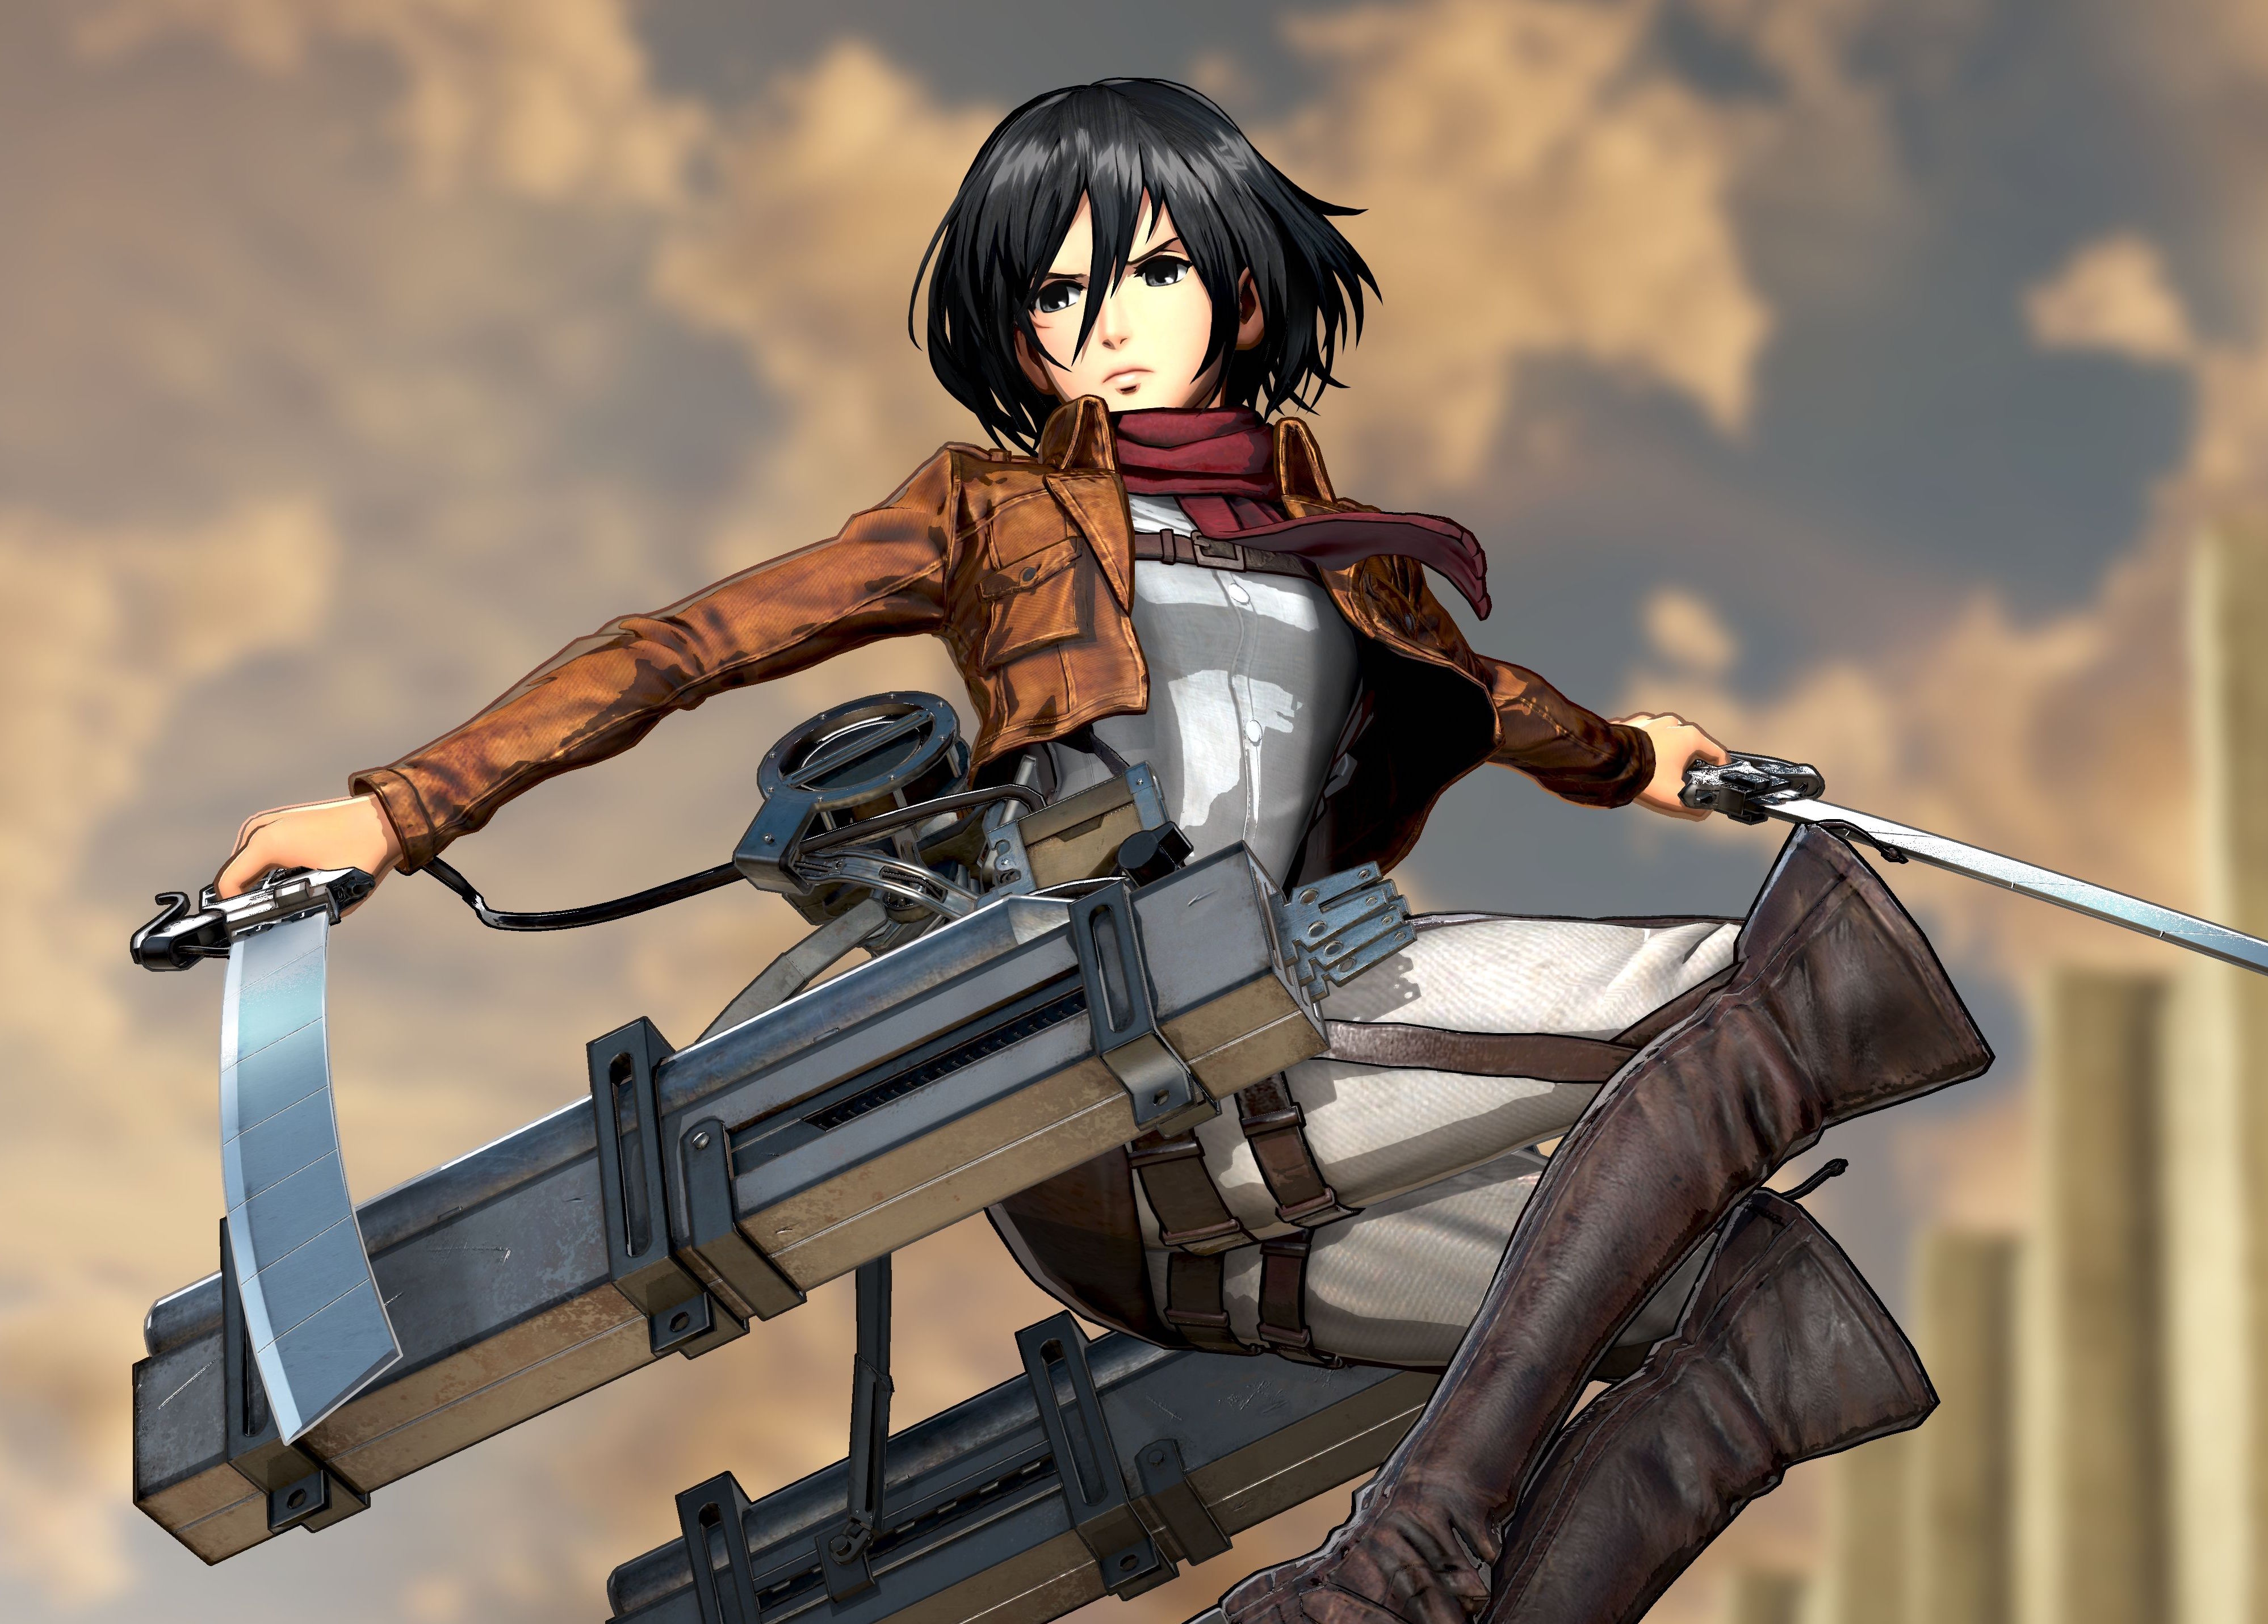 Attack on Titan 2 Game Hits Consoles and PC in March 2018